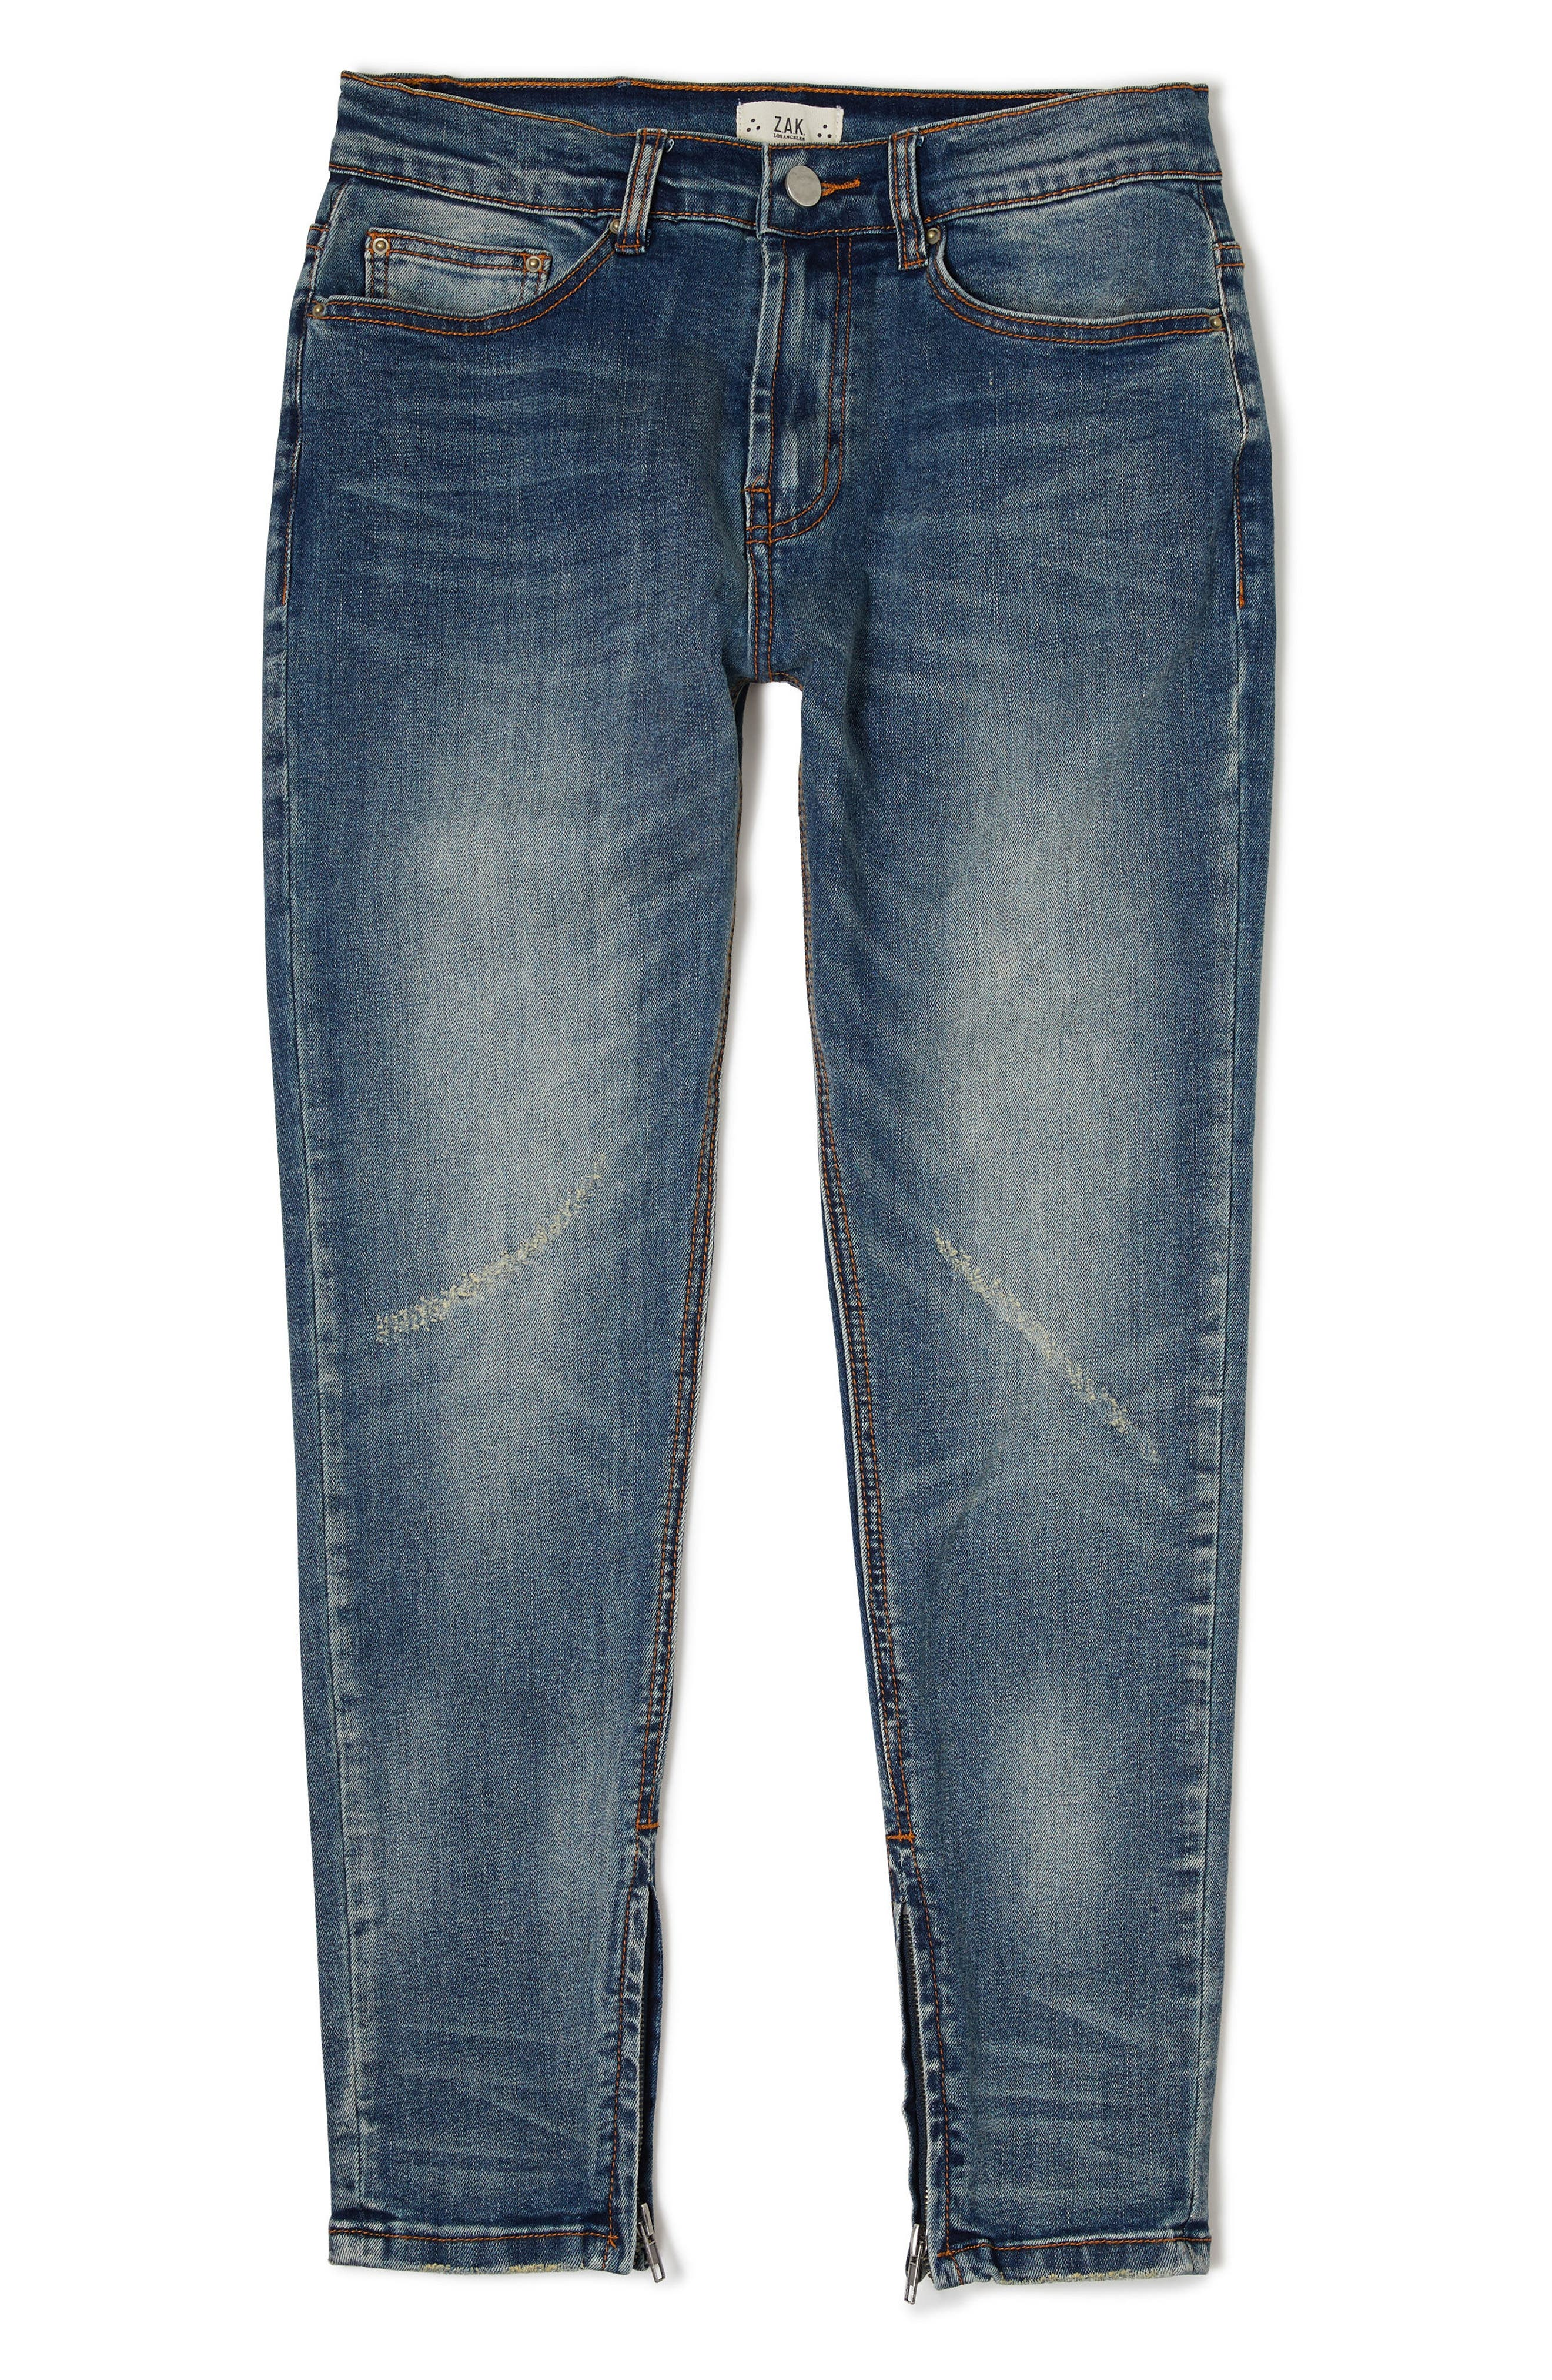 Sand Blasted Moto Skinny Jeans,                             Main thumbnail 1, color,                             Dark Wash Denim